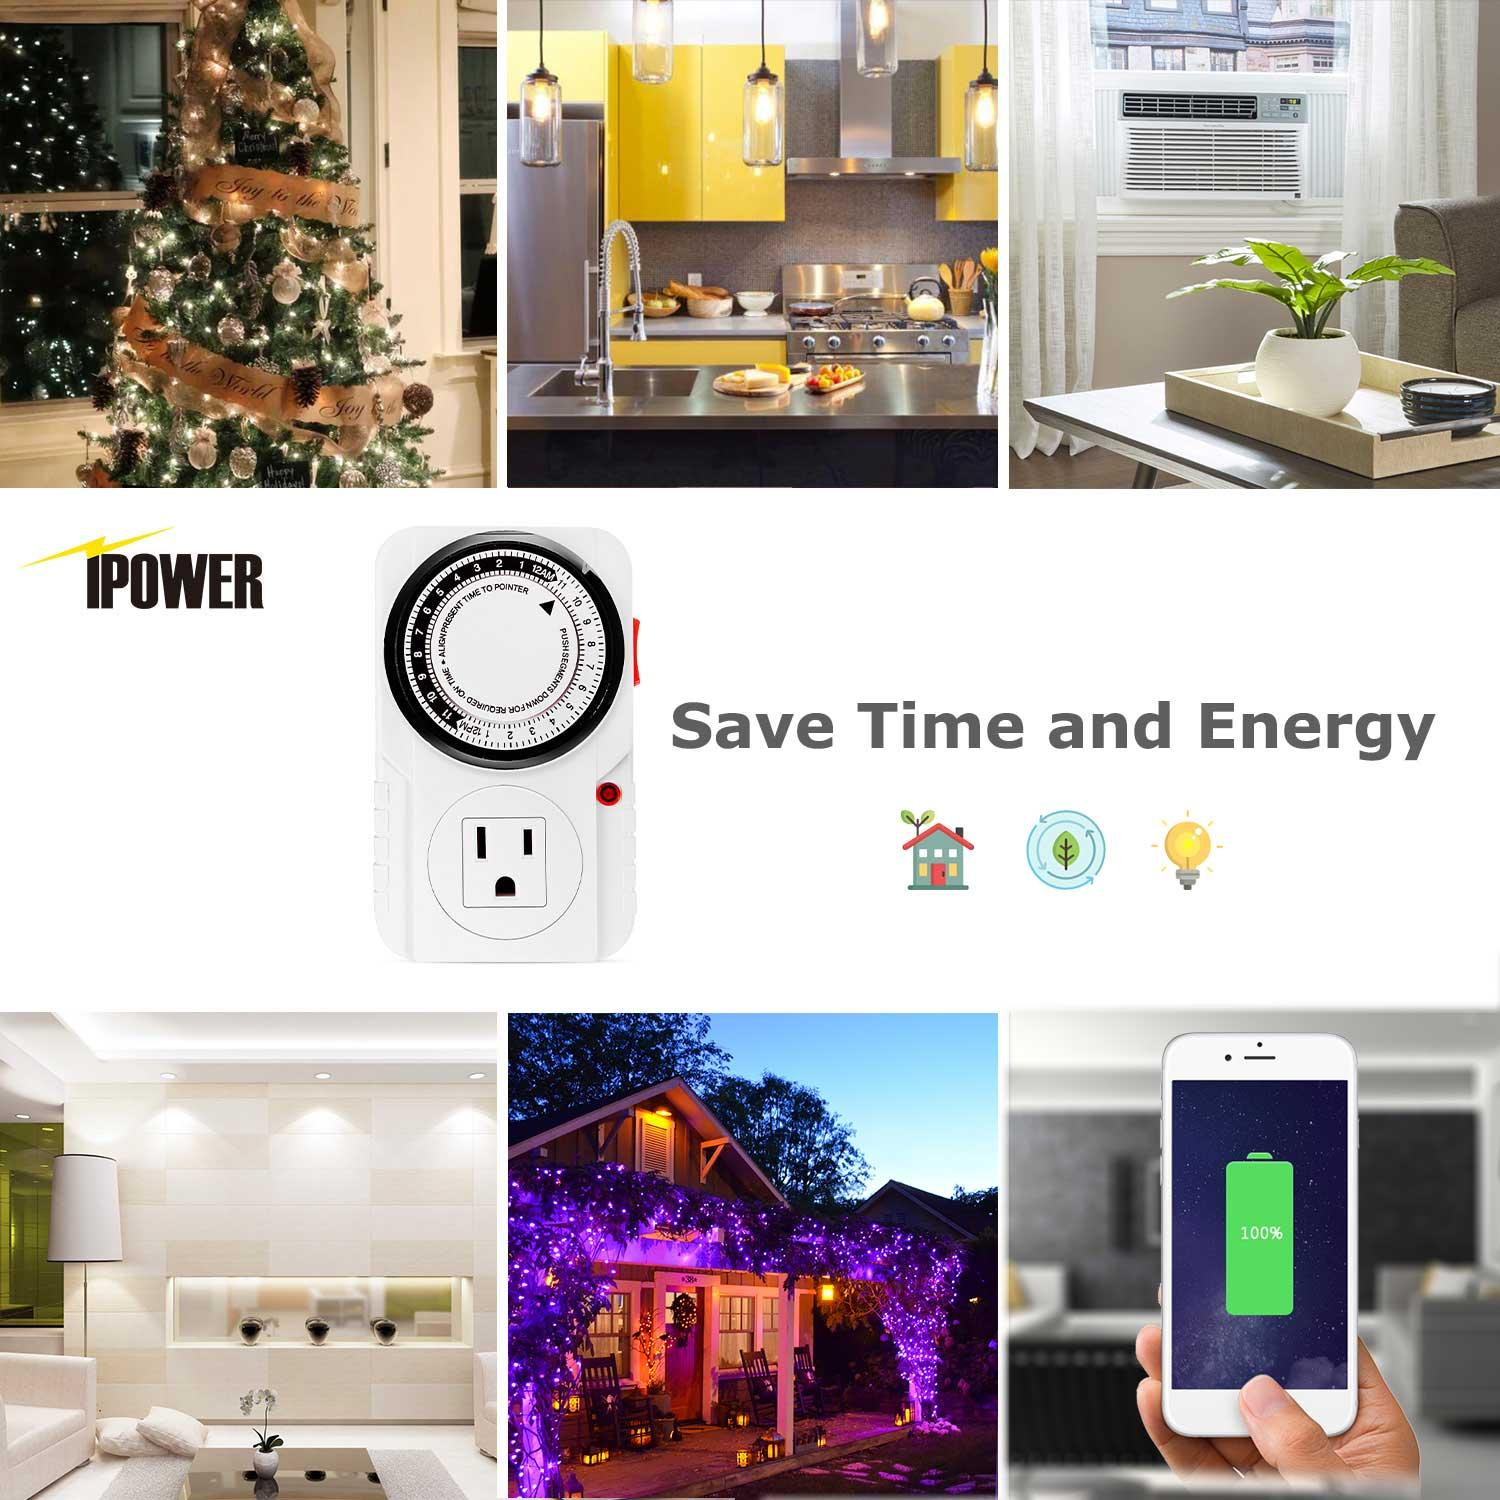 Amazon.com : IPower 2-Pack 24 Hour Plug-in Mechanical